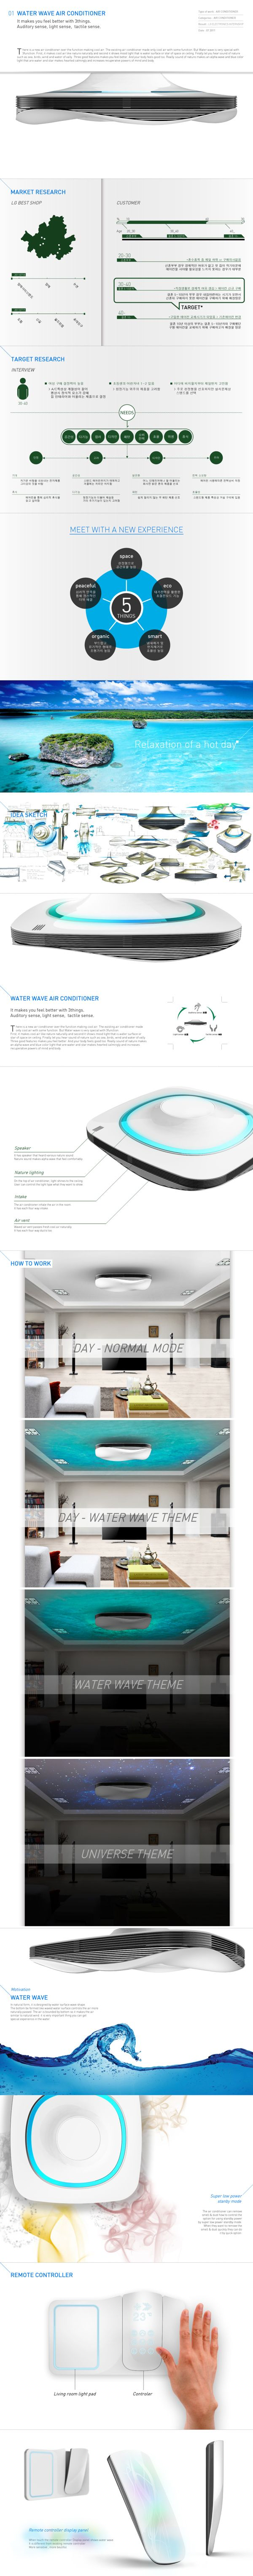 Air conditioner on Behance